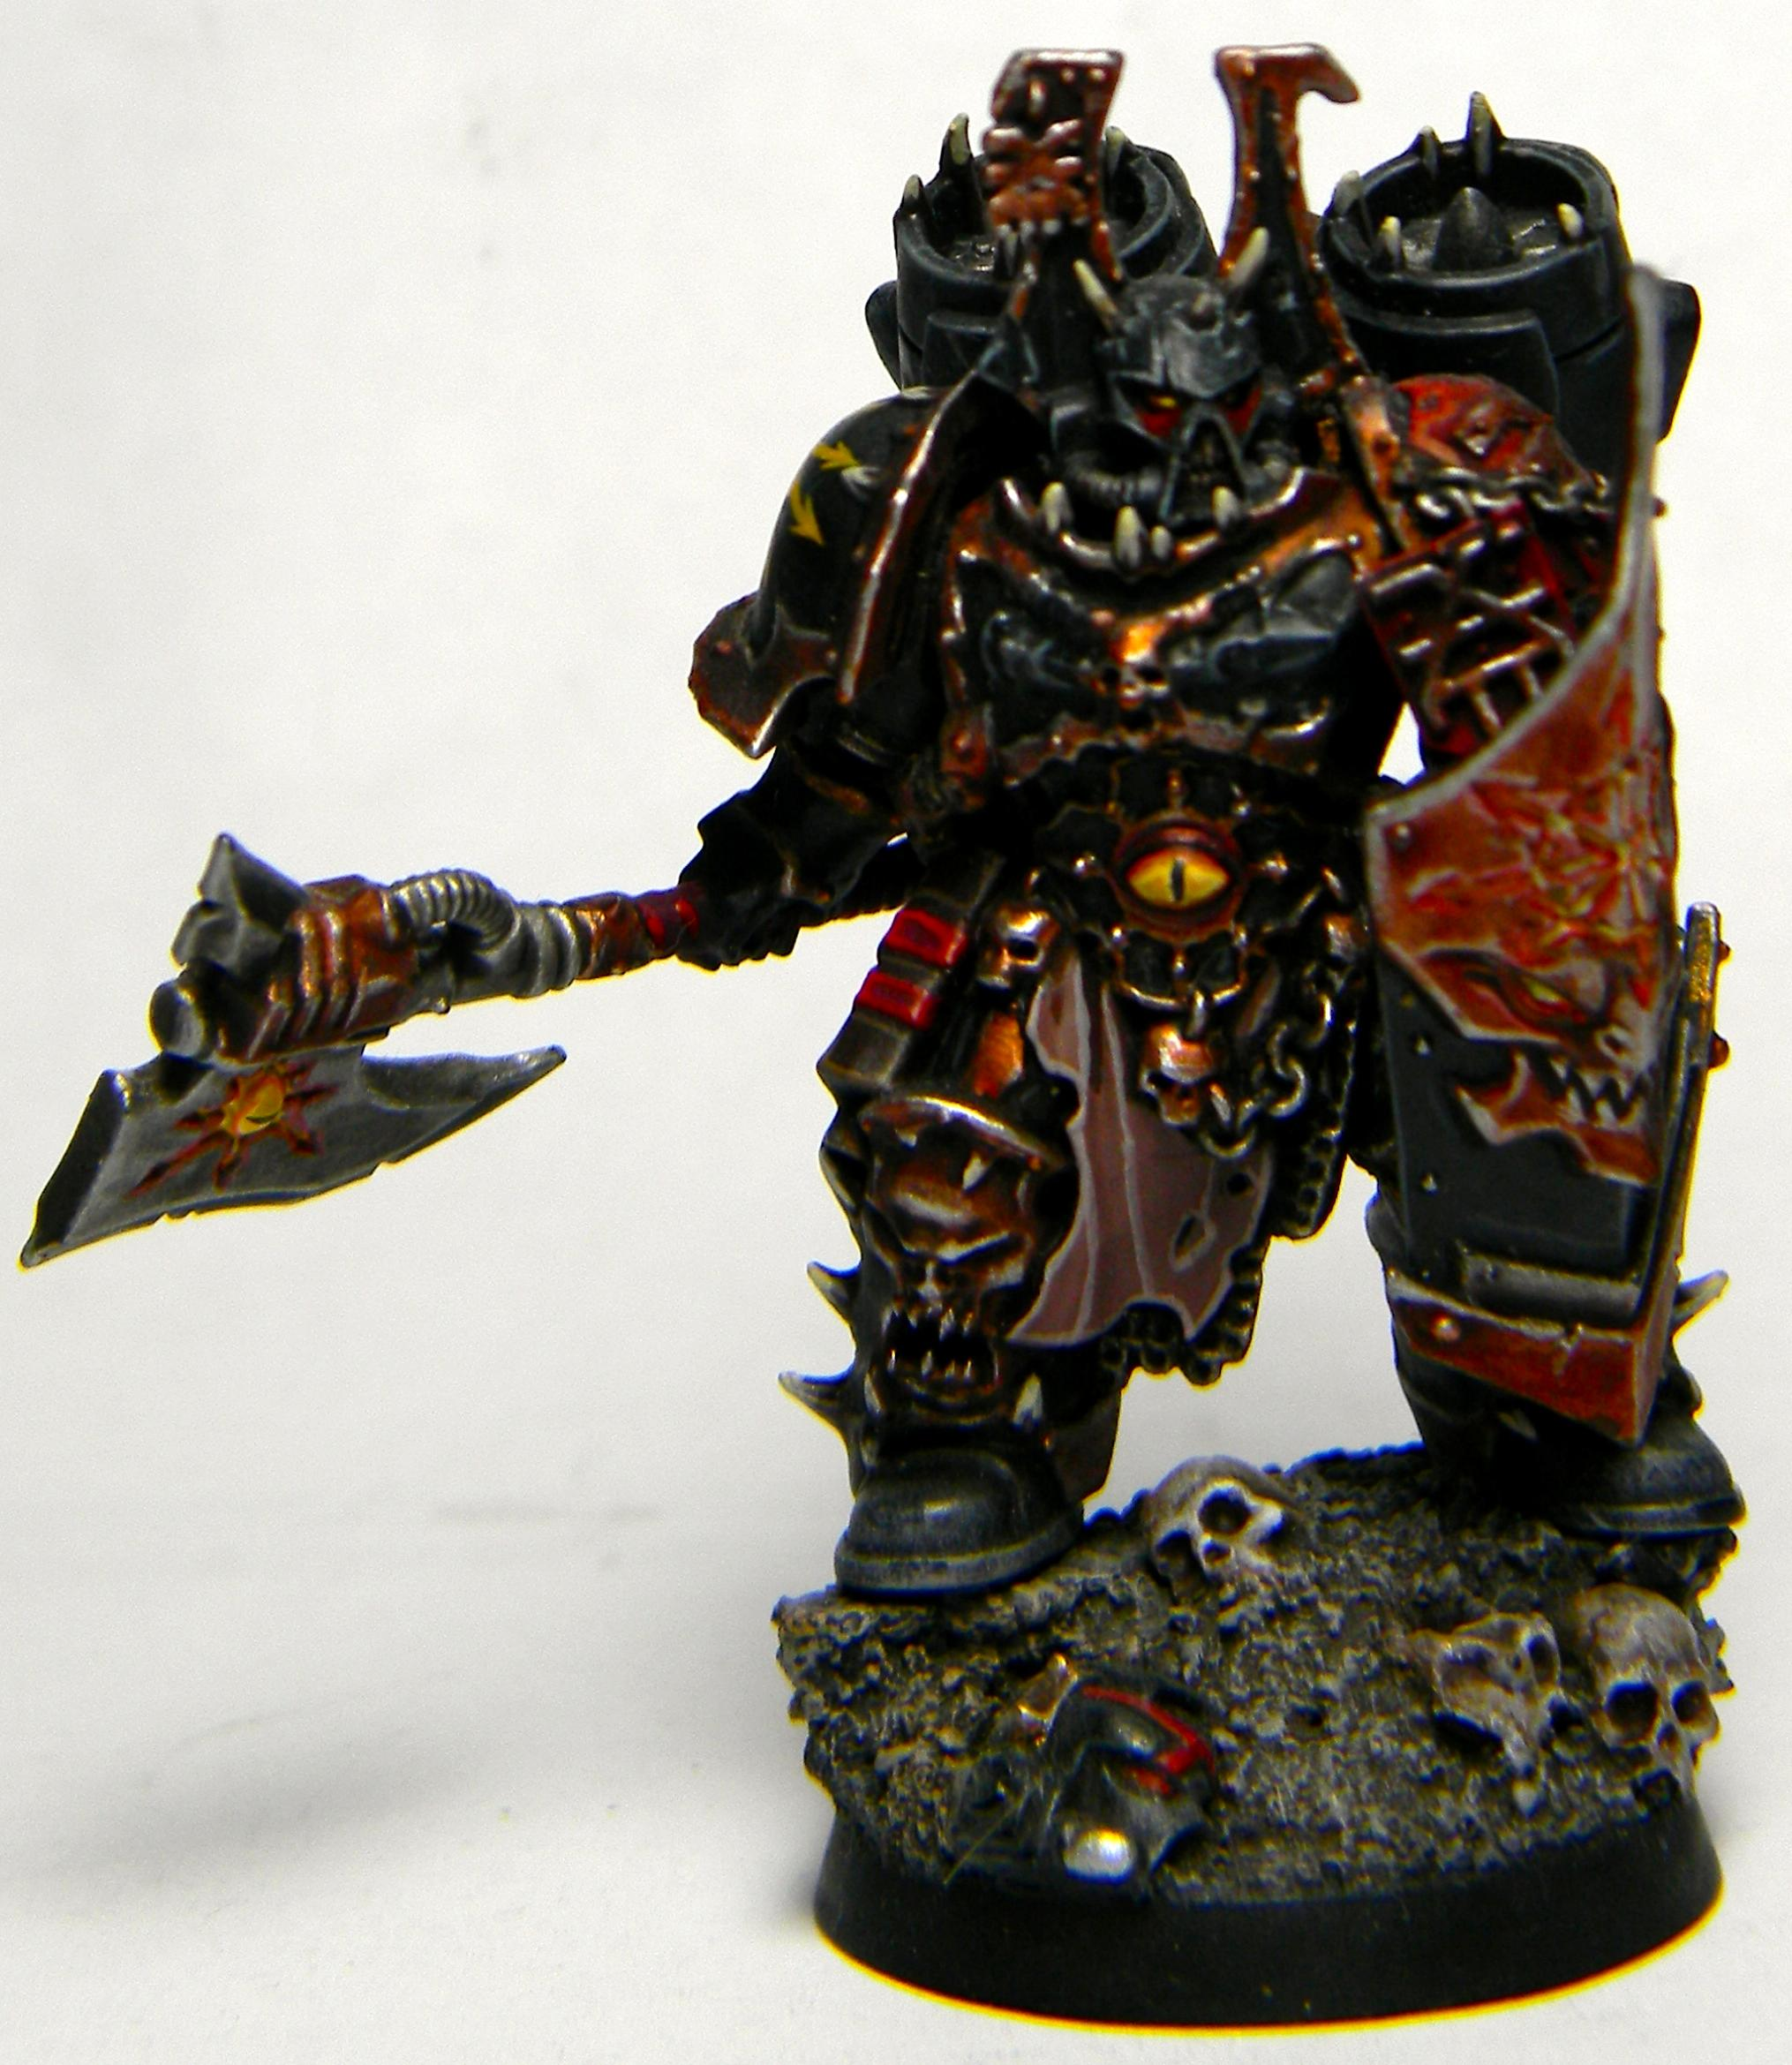 Assault, Berzerker, Black Legion, Chaos, Conversion, Khorne, Raptors, Space Marines